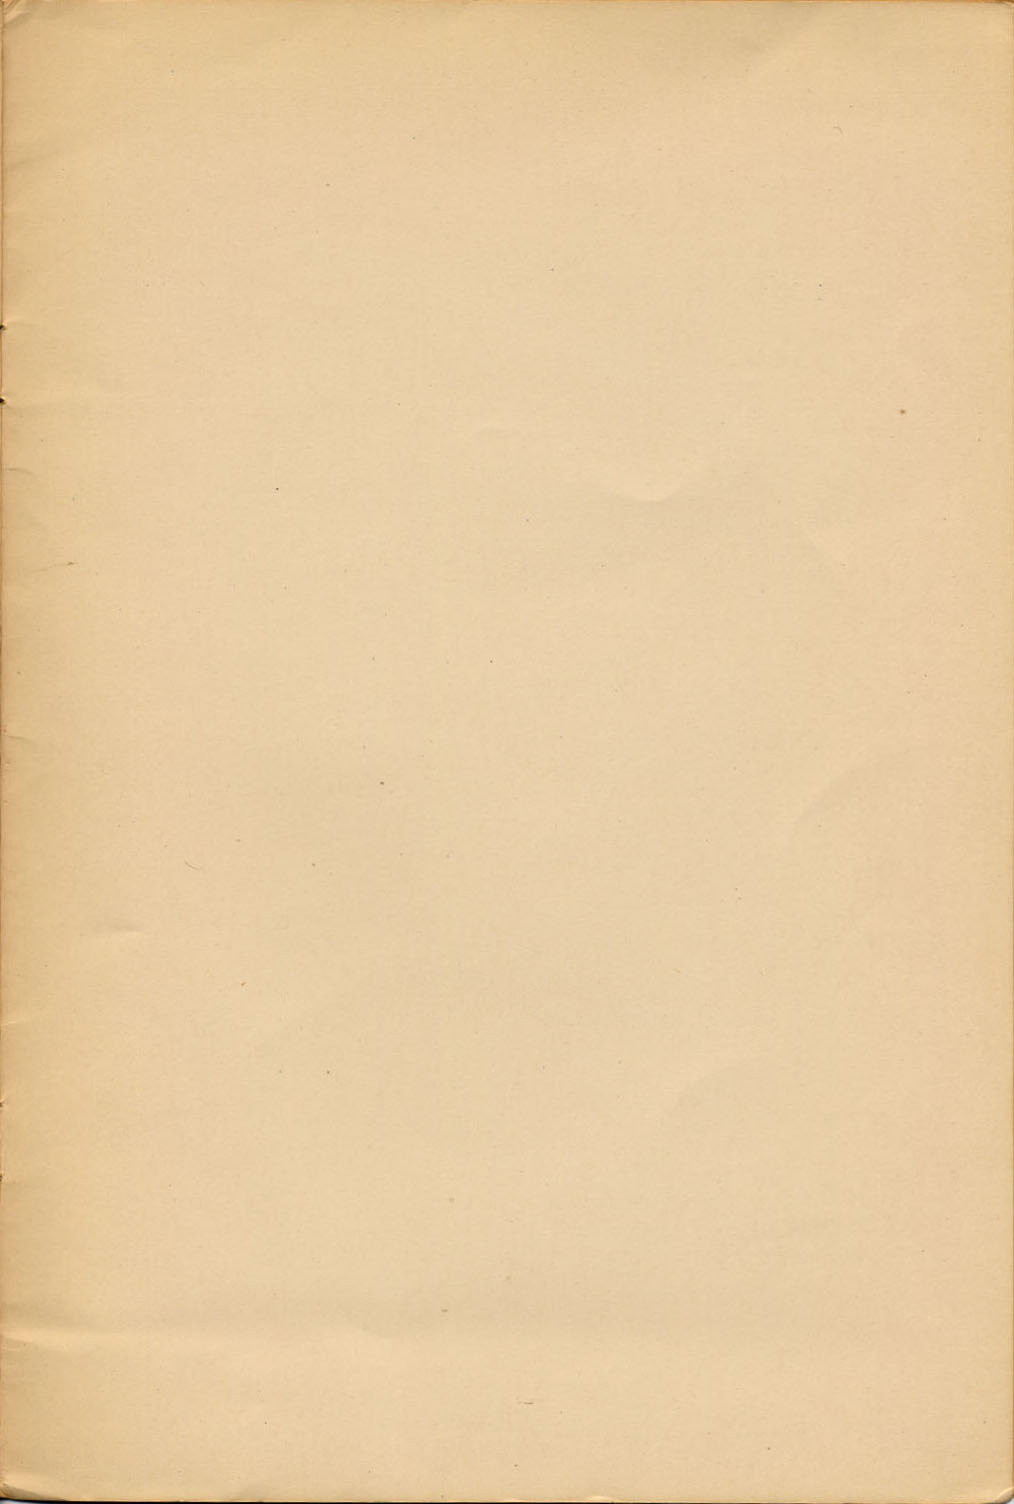 Norton i emperor of the united states and protector of mexico 7 8 blank page publicscrutiny Image collections